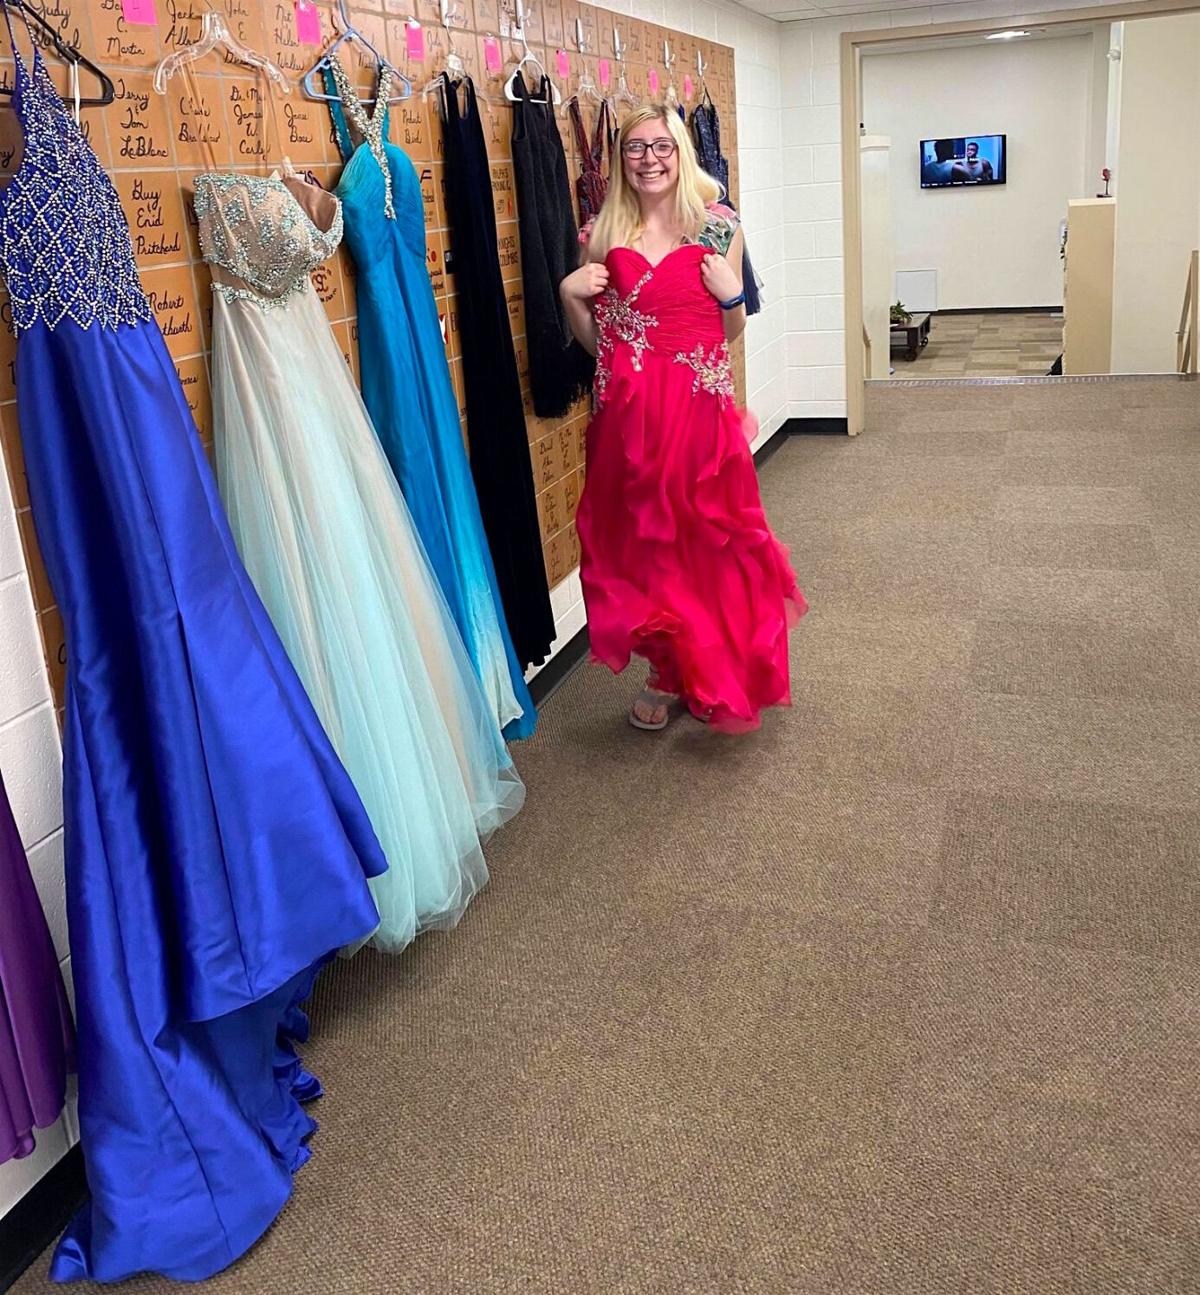 Prom dress try-on